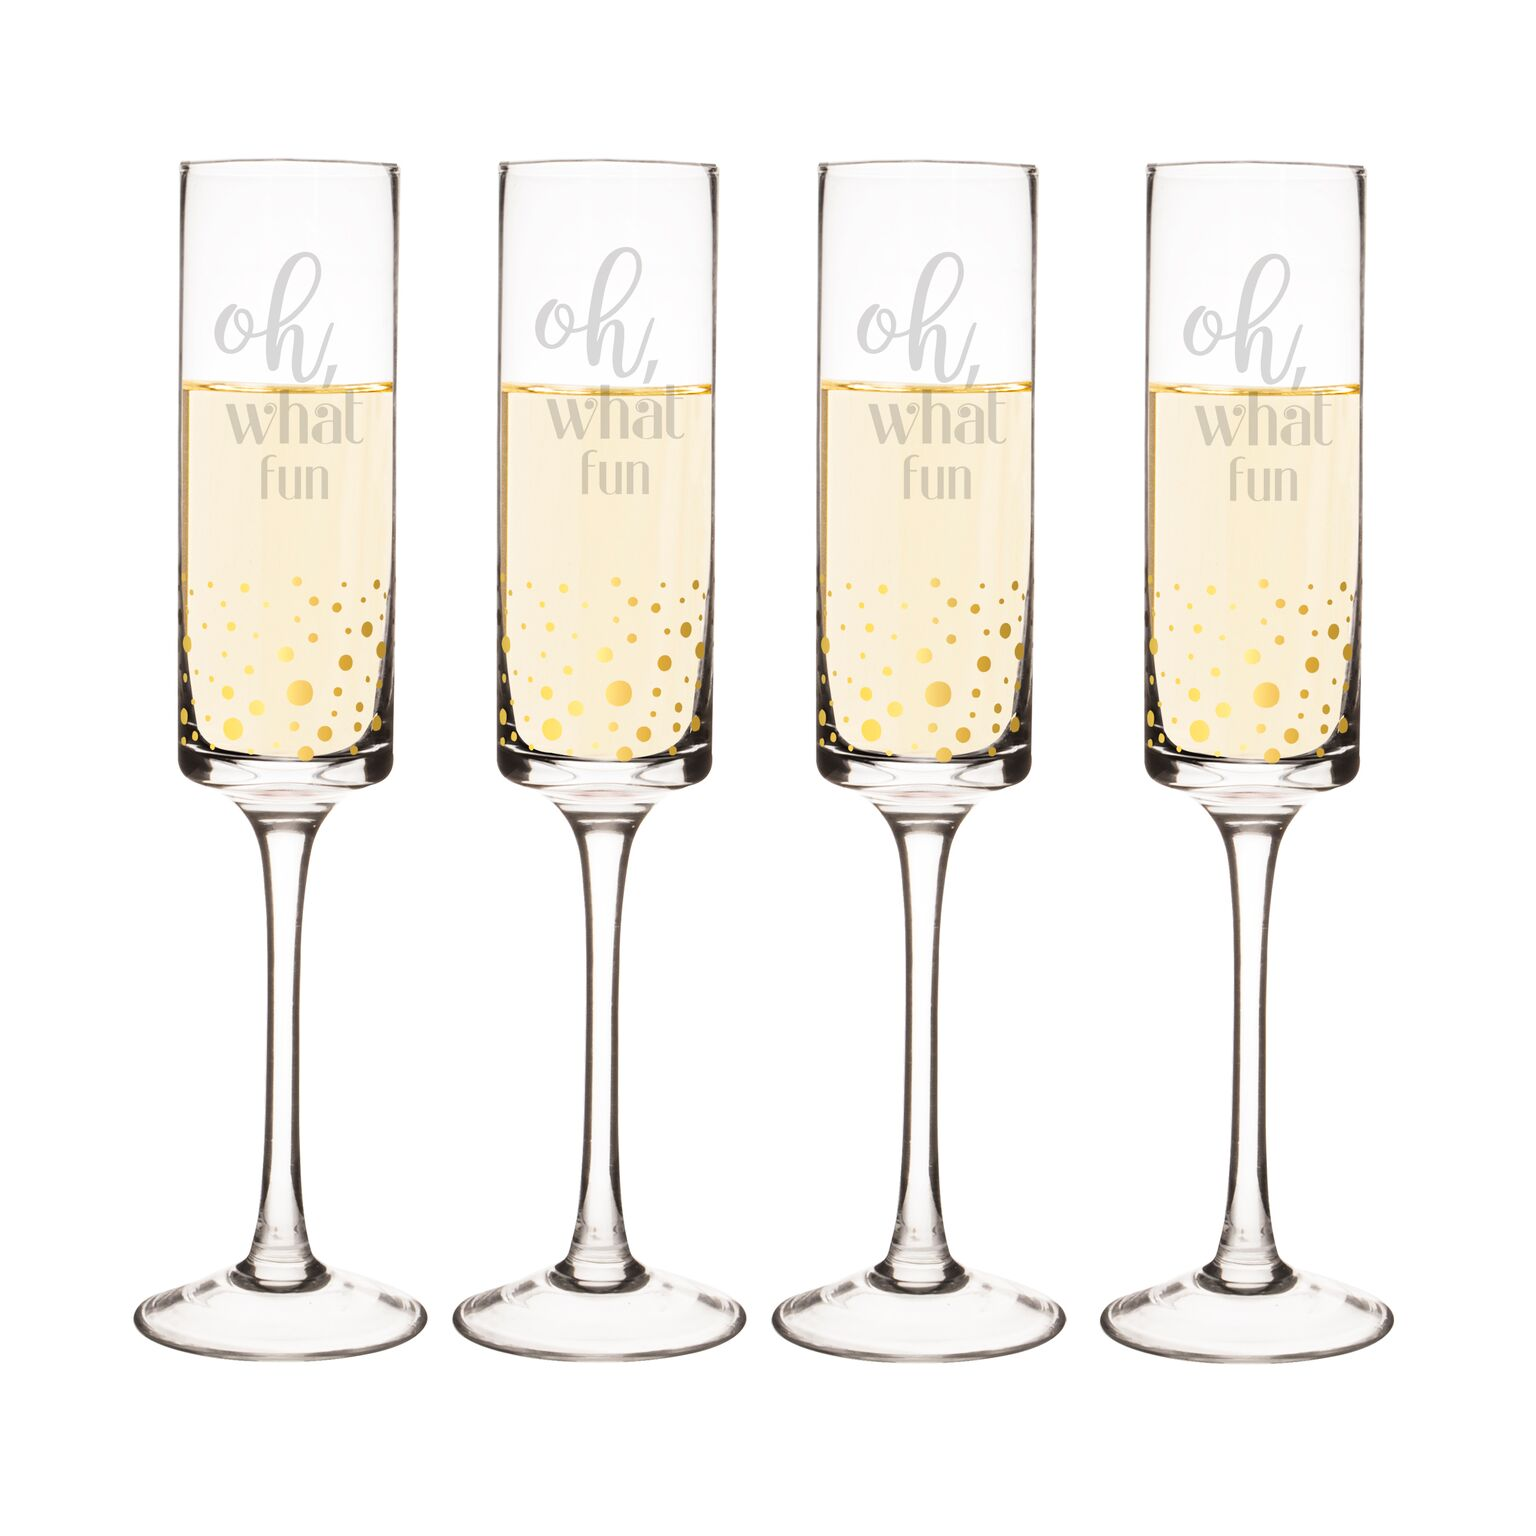 Cathys Concepts H17-GD3668-4 8 oz Oh What Fun Gold Dot Contemporary Champagne Flutes - Set of 4